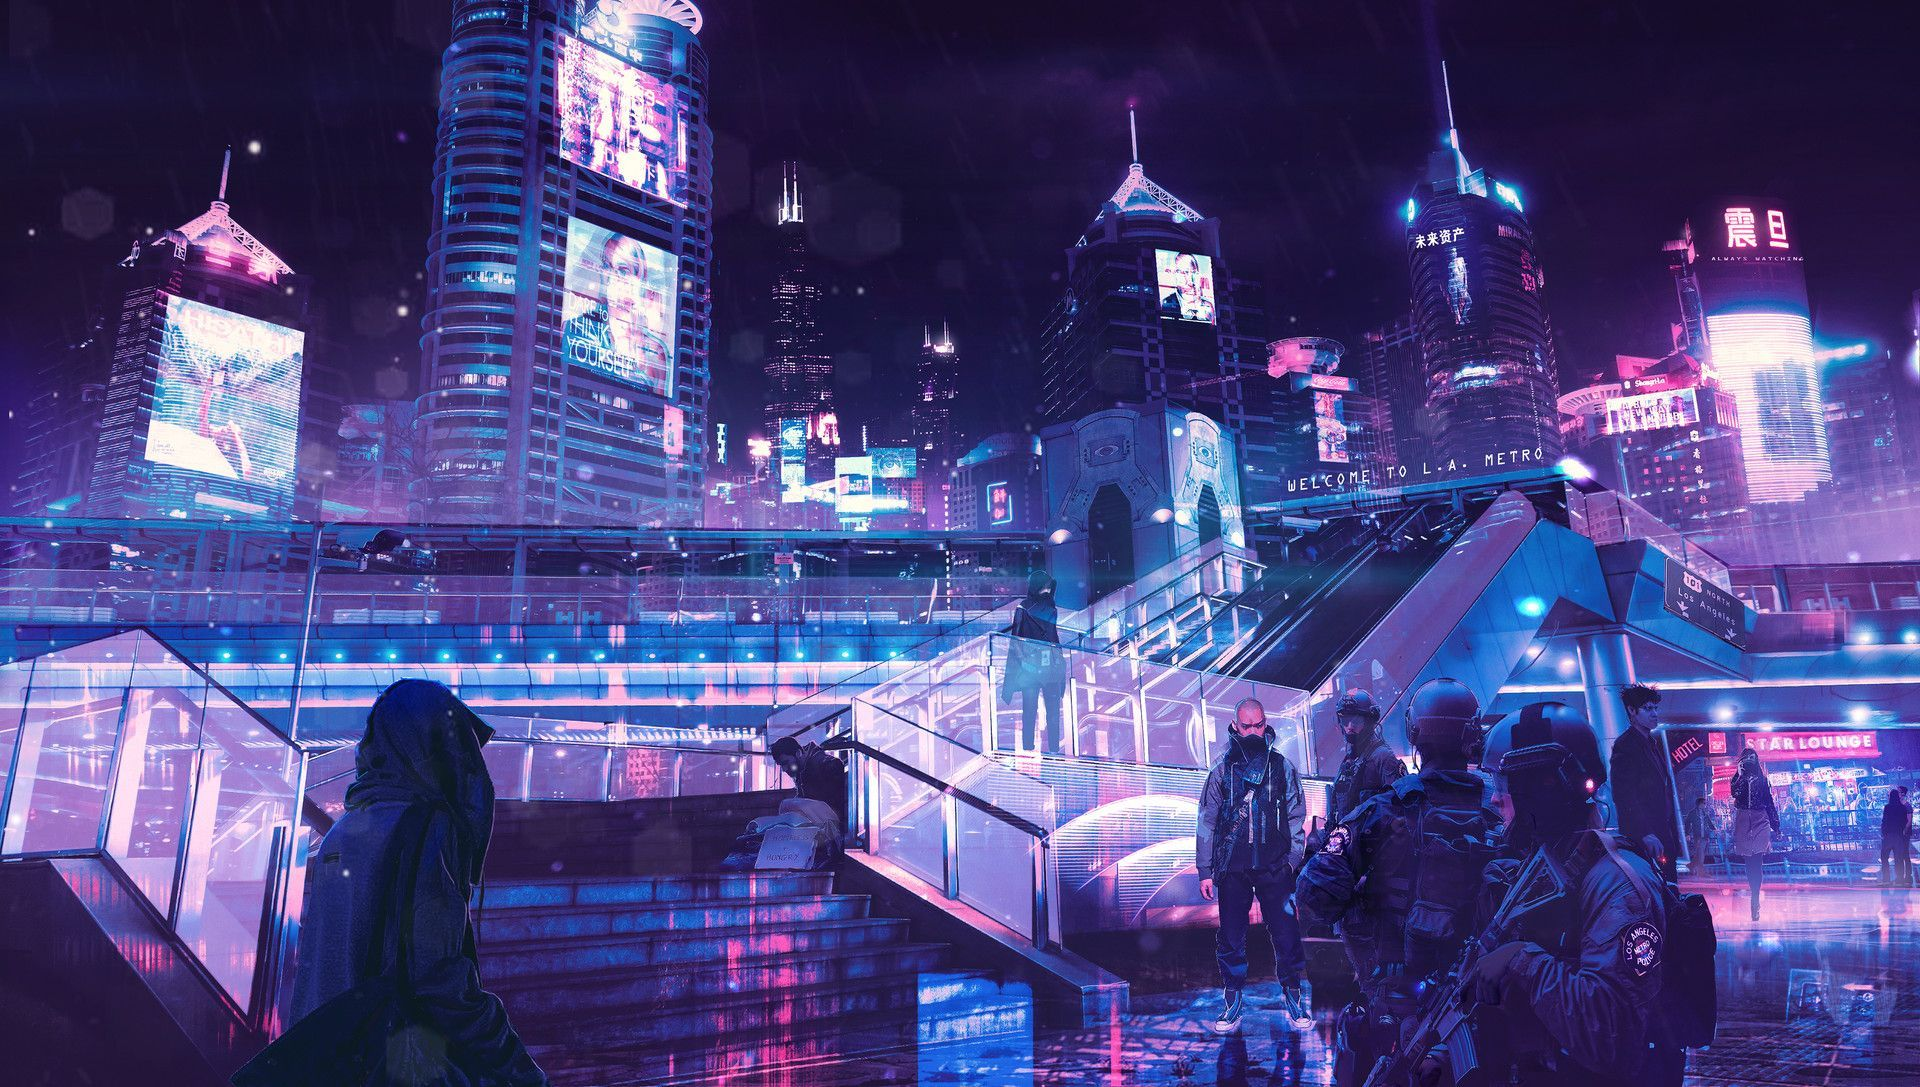 Neon City Wallpapers Top Free Neon City Backgrounds